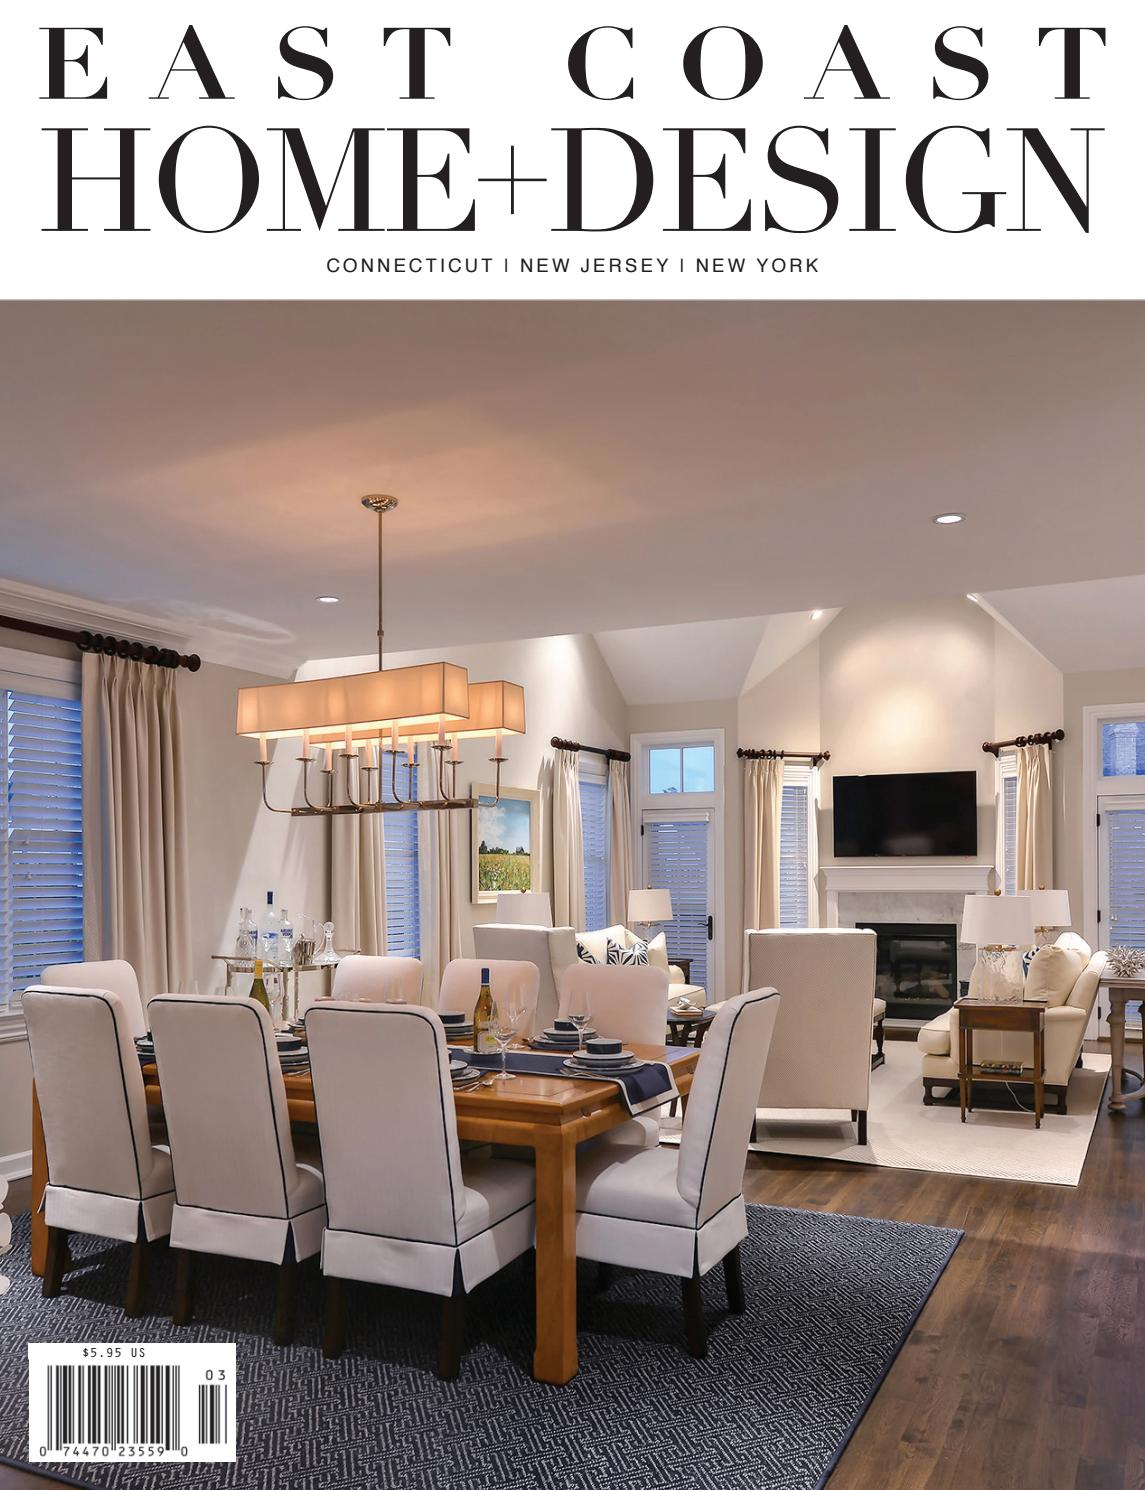 About home design